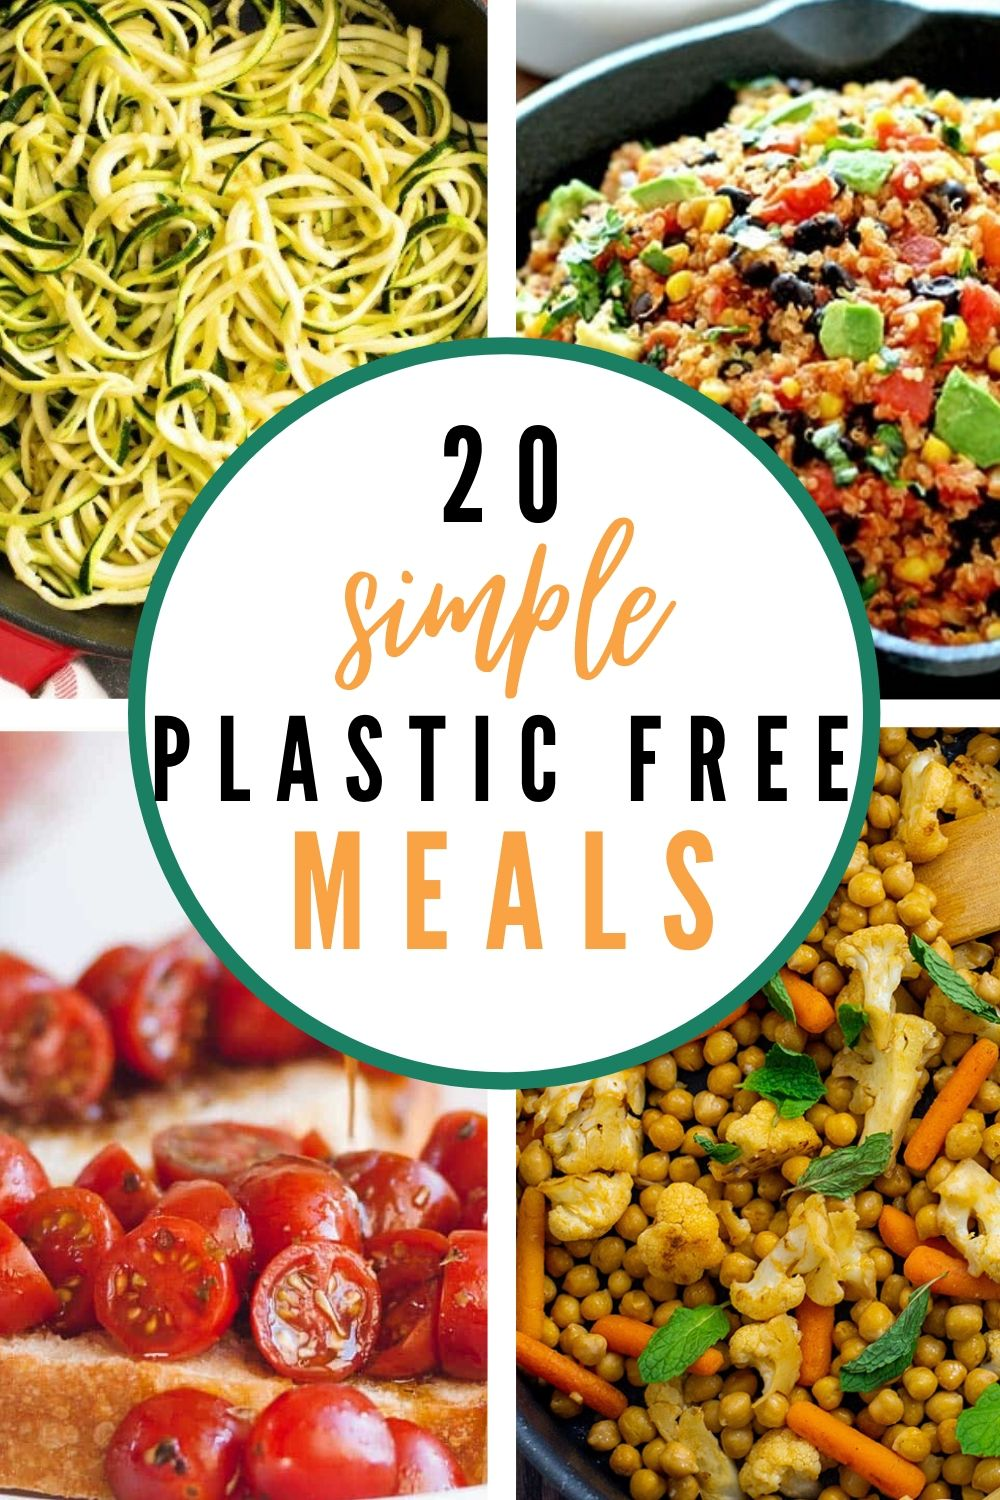 Simple Plastic Free Meals {That Even I Can Make!}